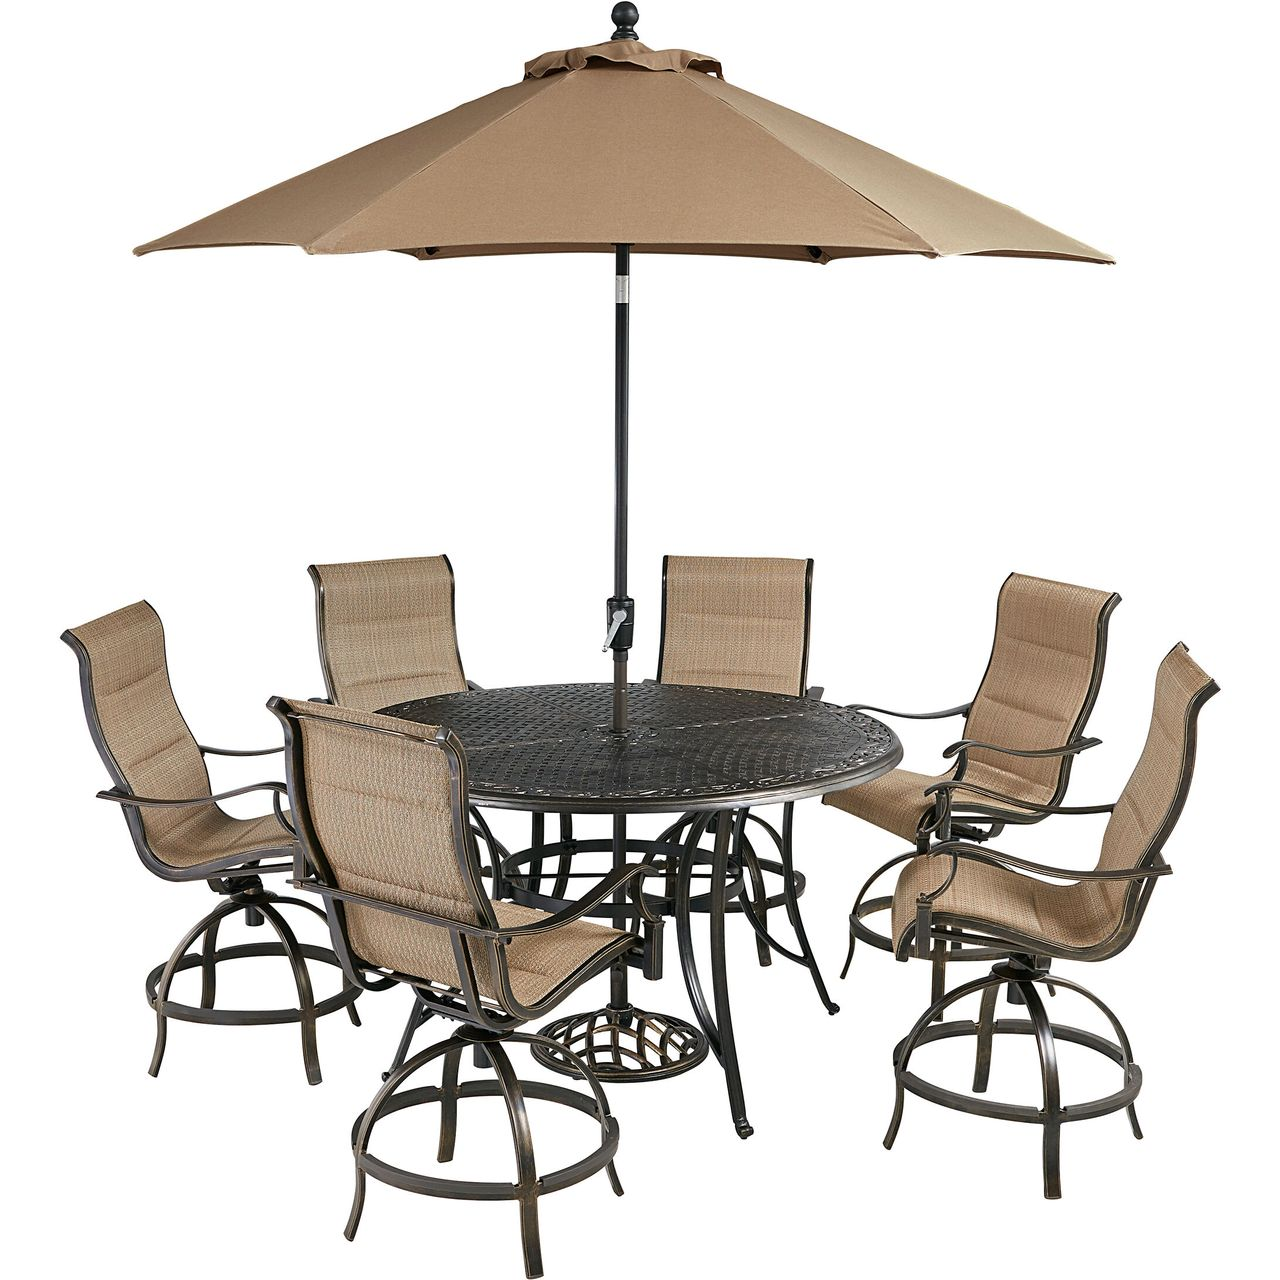 """Hanover Traditions 7-Pc 56"""" High-Dining Set With Tan Chairs/Umbrella"""